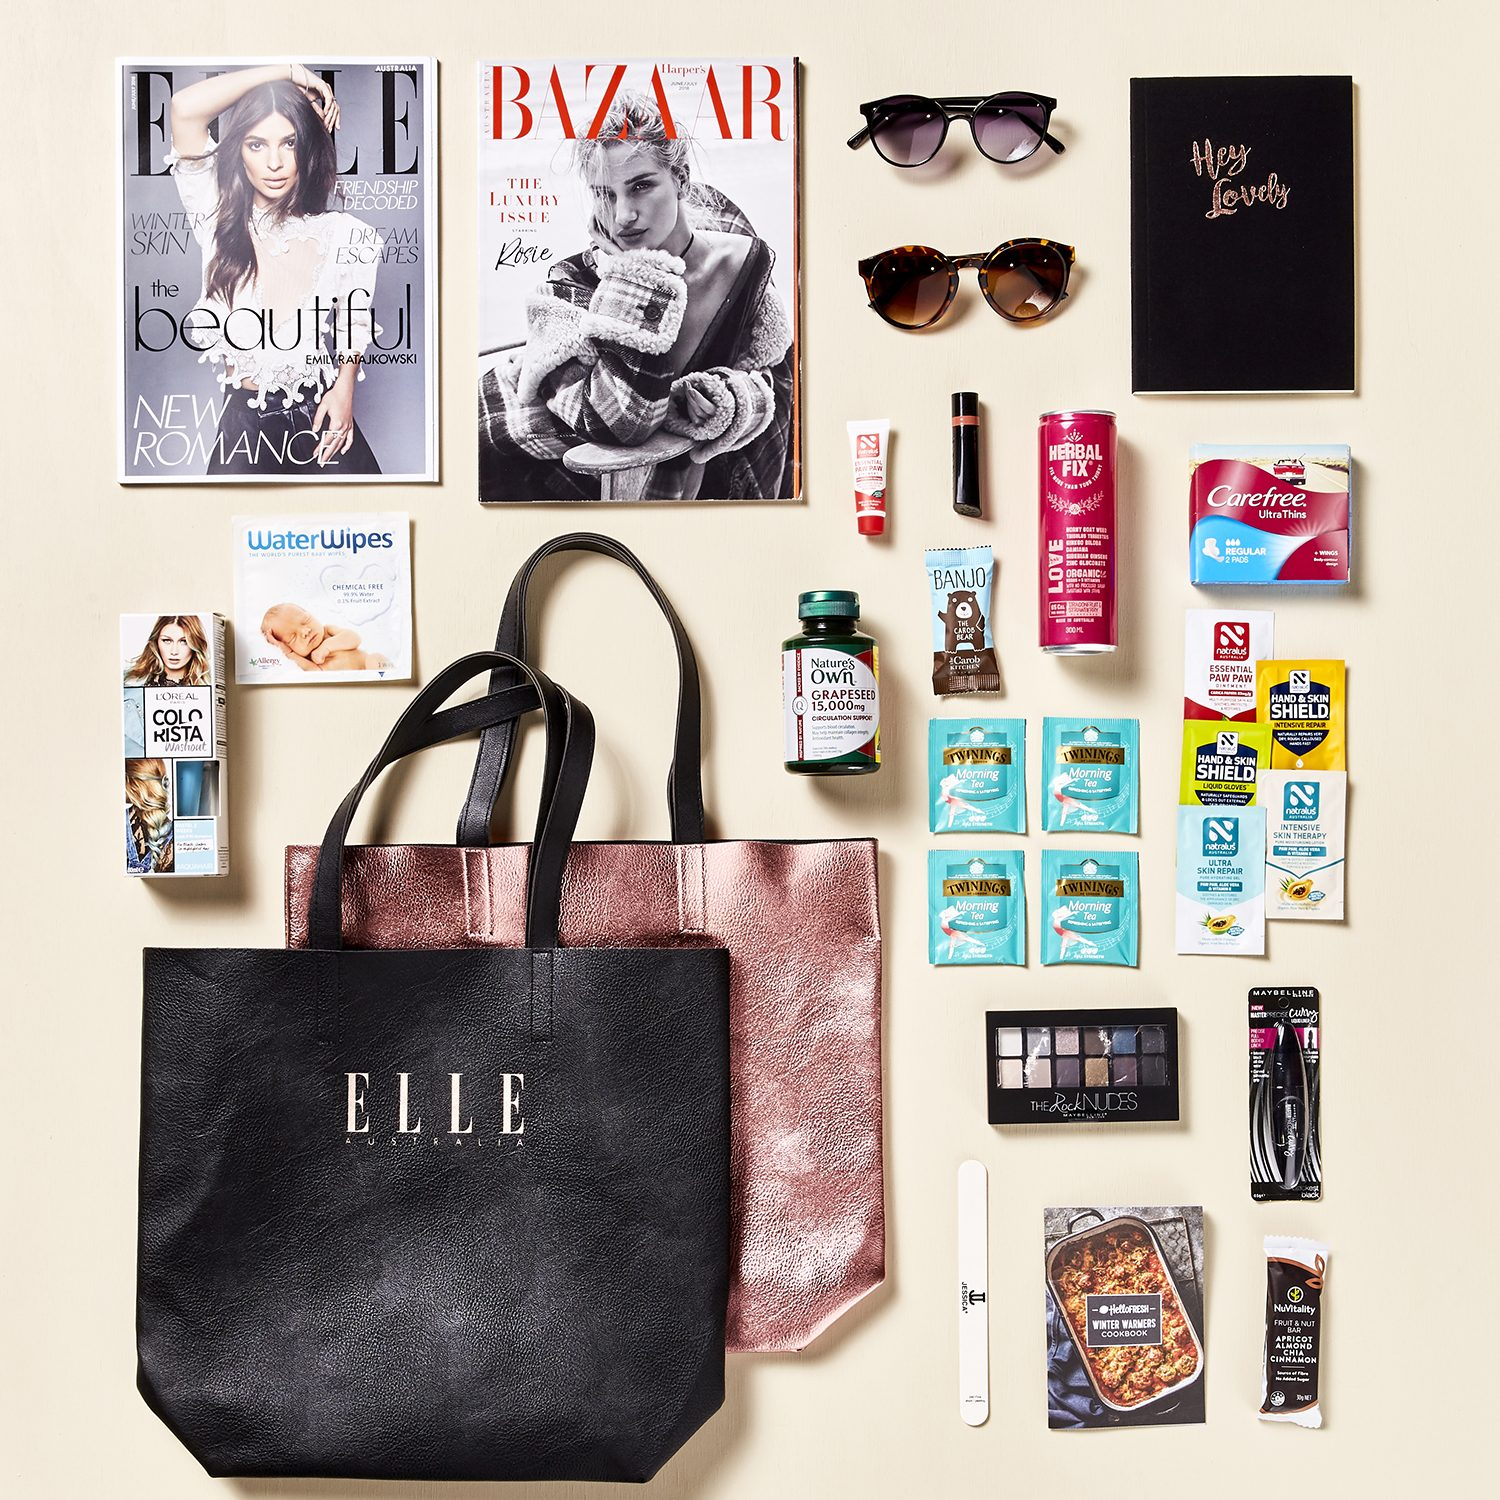 ELLE Australia Sampling Program and Branded Showbag